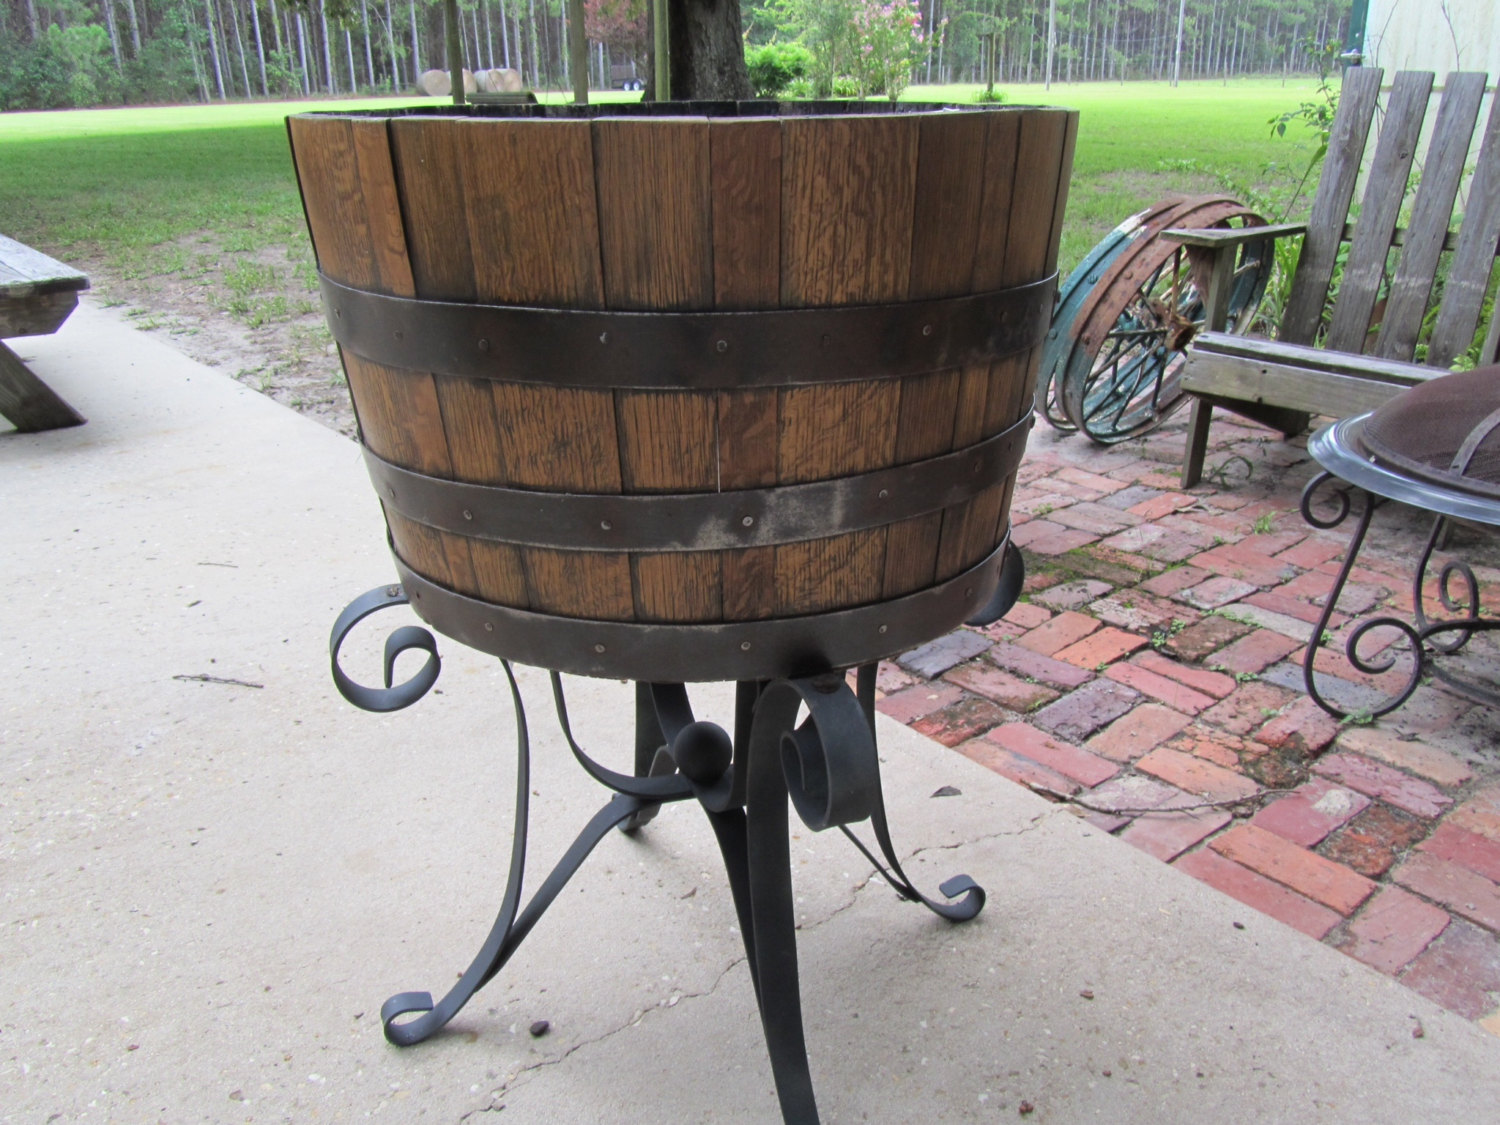 Whisky Barrel Furniture Is Rustic And Classy